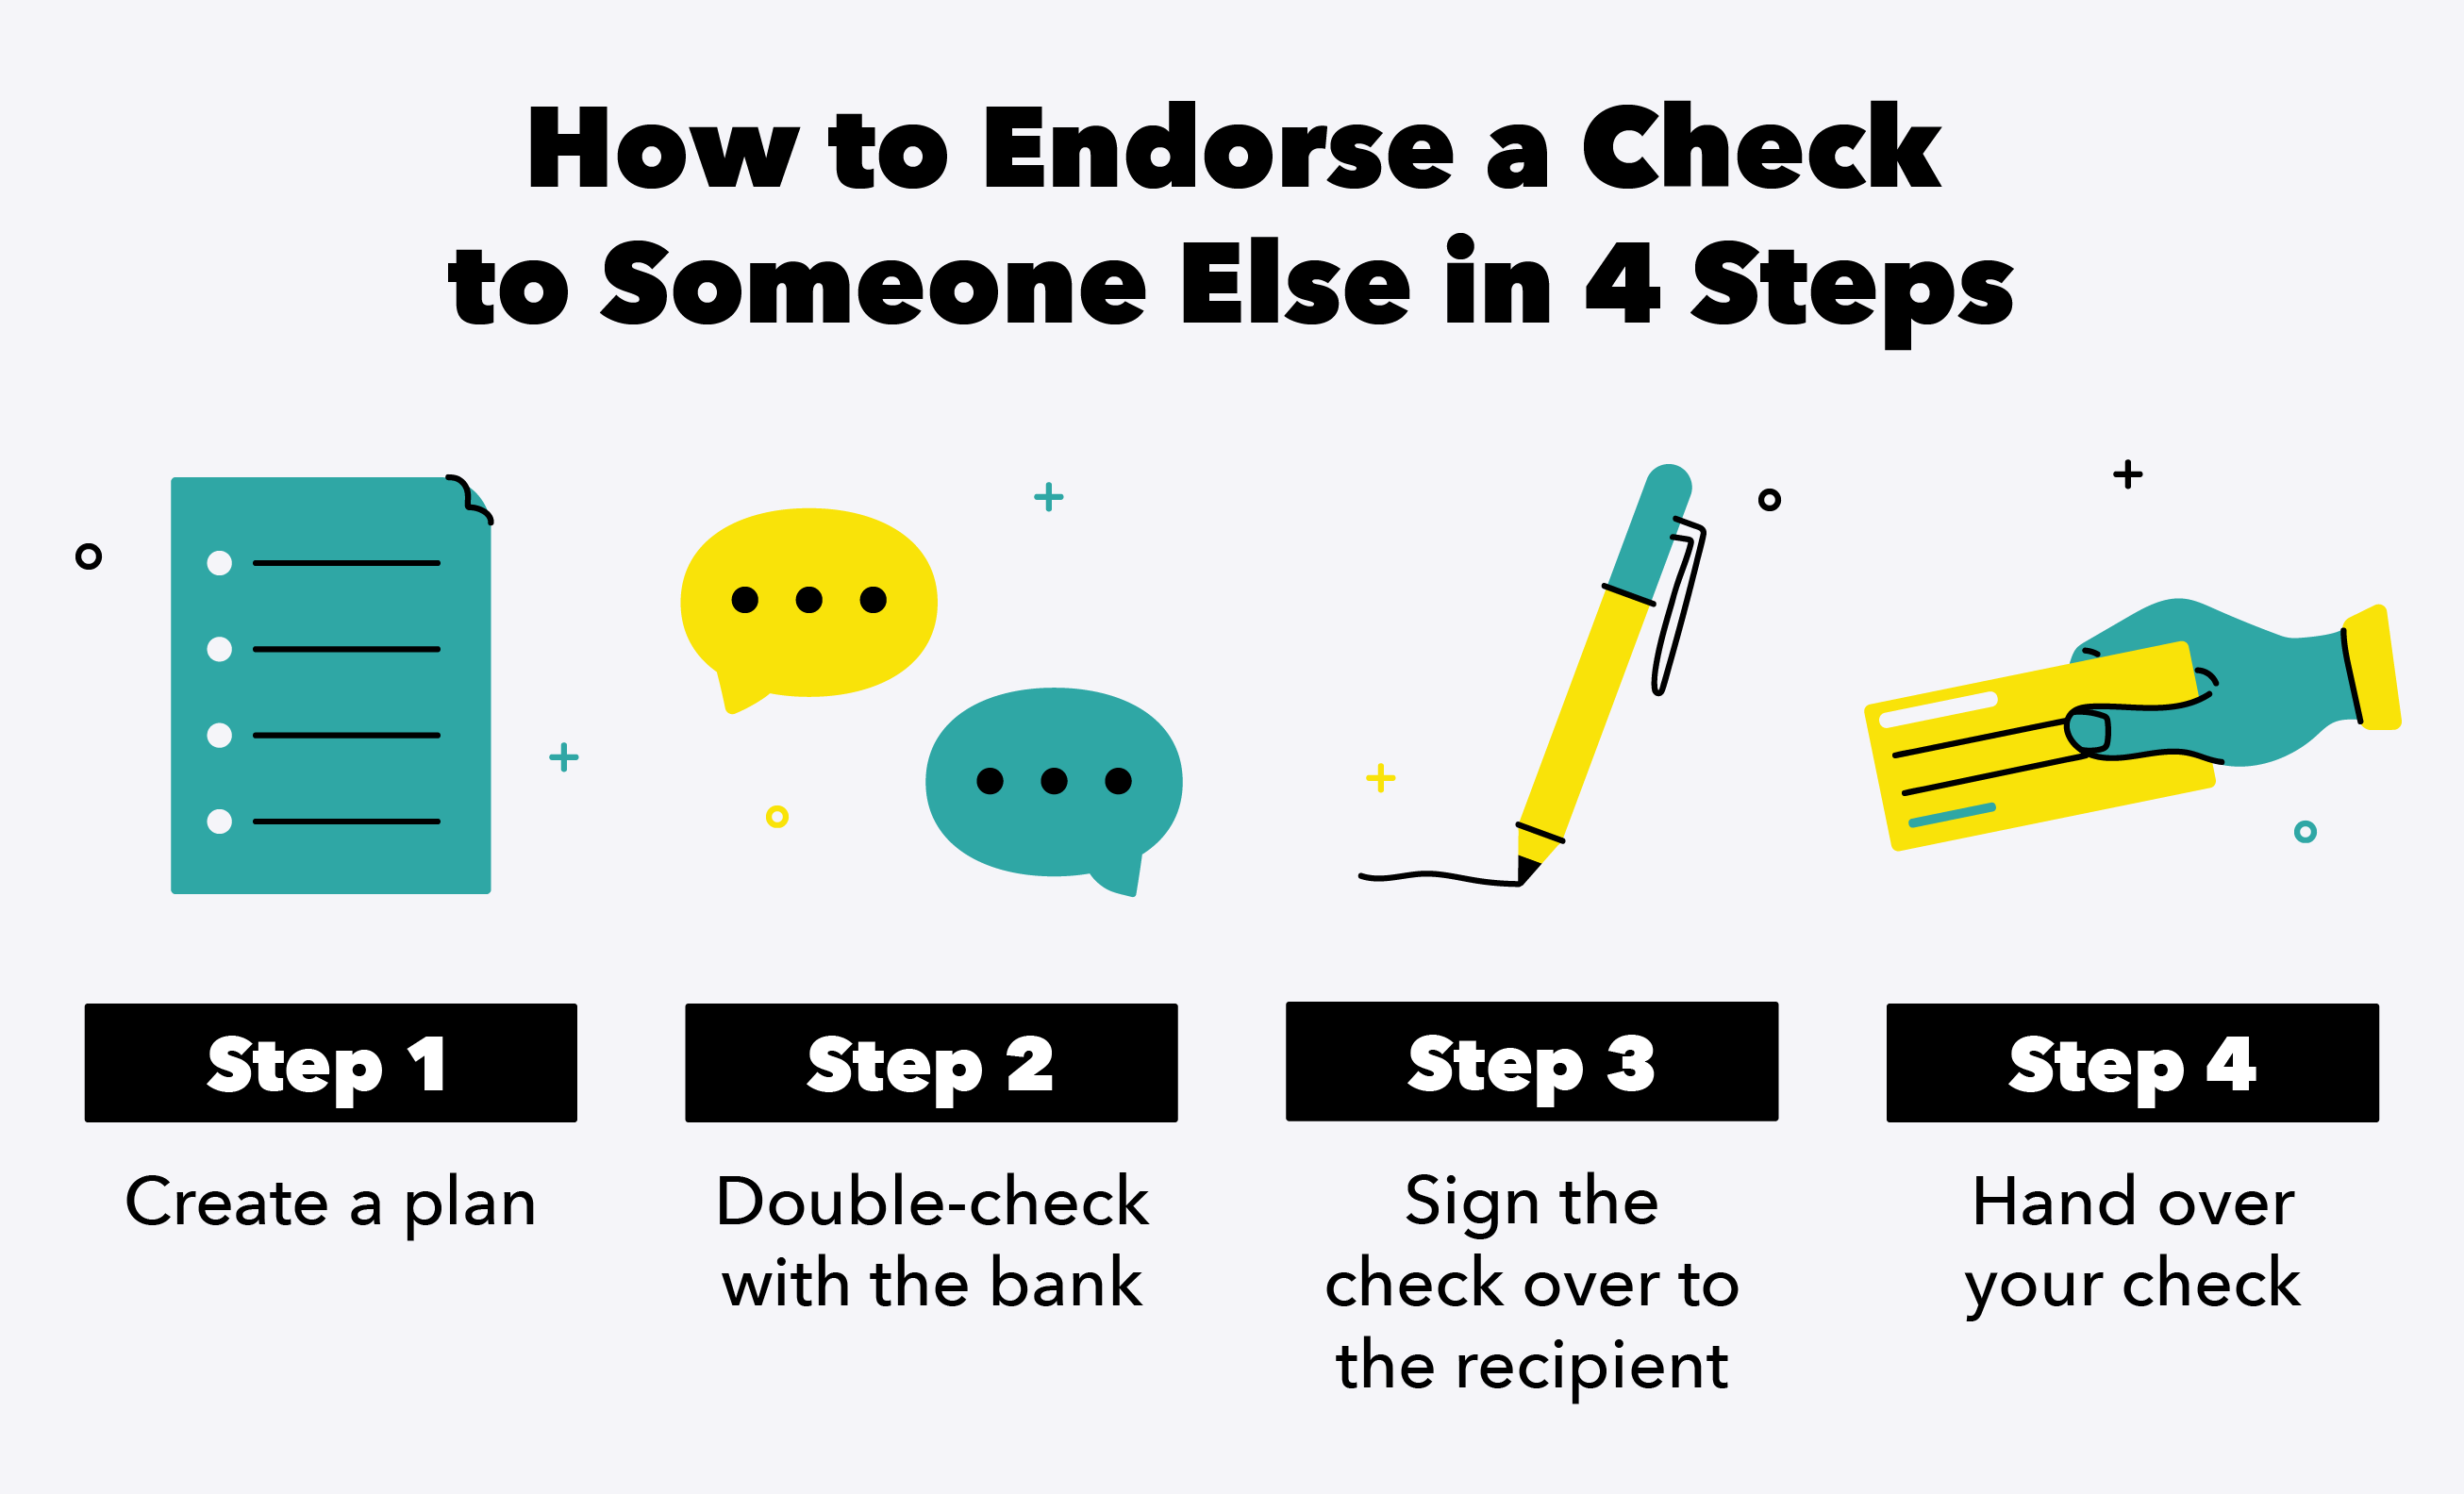 How to Endorse a Check to Someone Else in 4 Steps